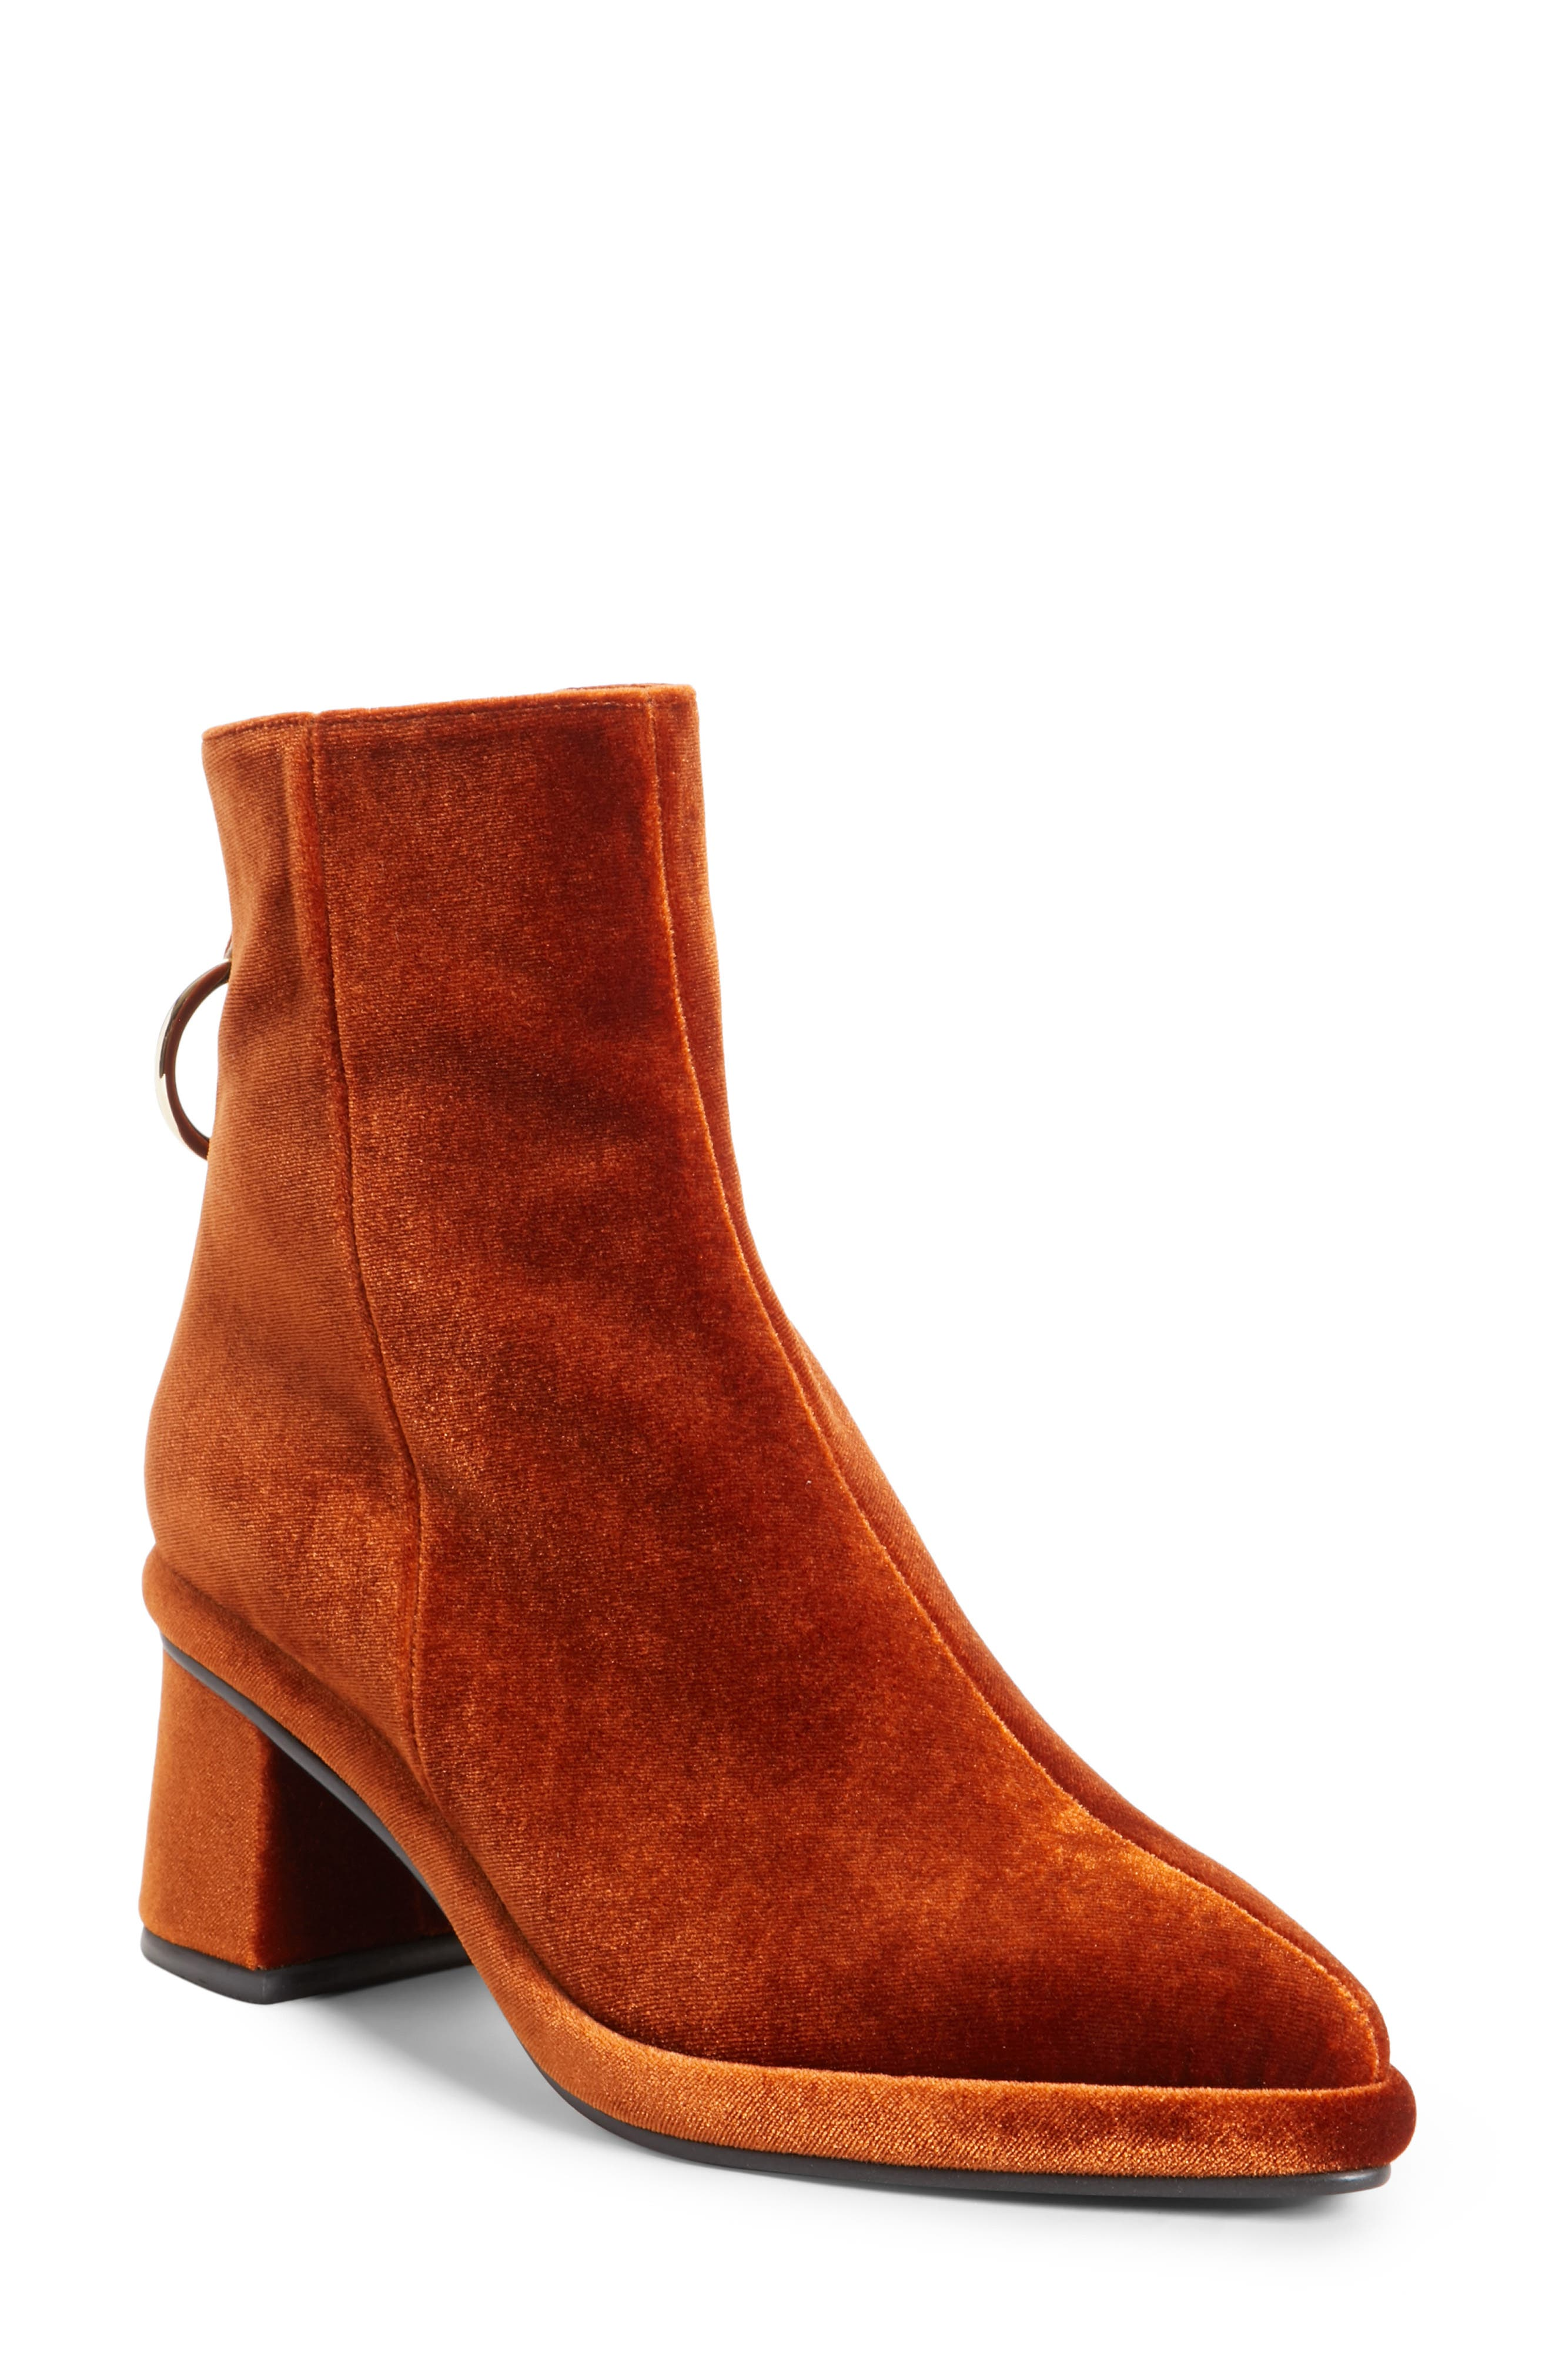 Ring Slim Boot,                         Main,                         color, Copper